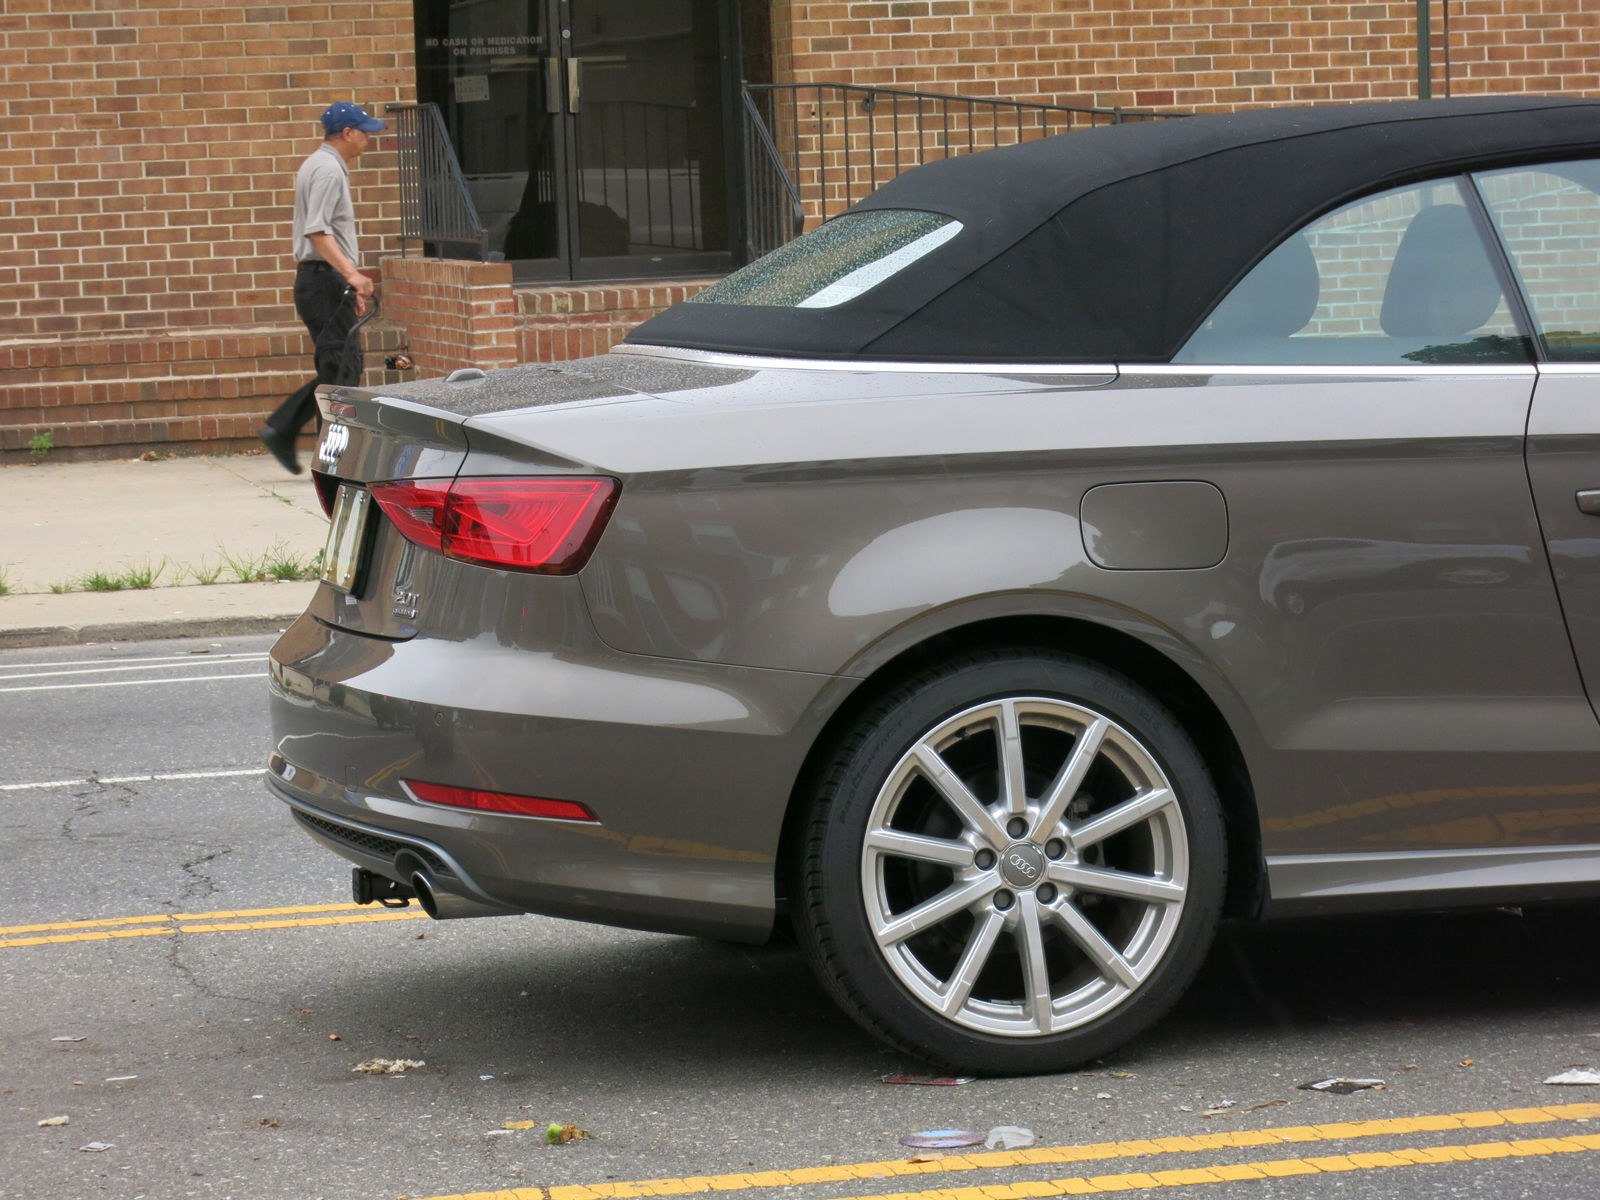 cabriolet owners i need a hitch for my bike rack help rh audiworld com 2013 Audi A3 Trailer Wiring Audi Q5 Factory Hitch